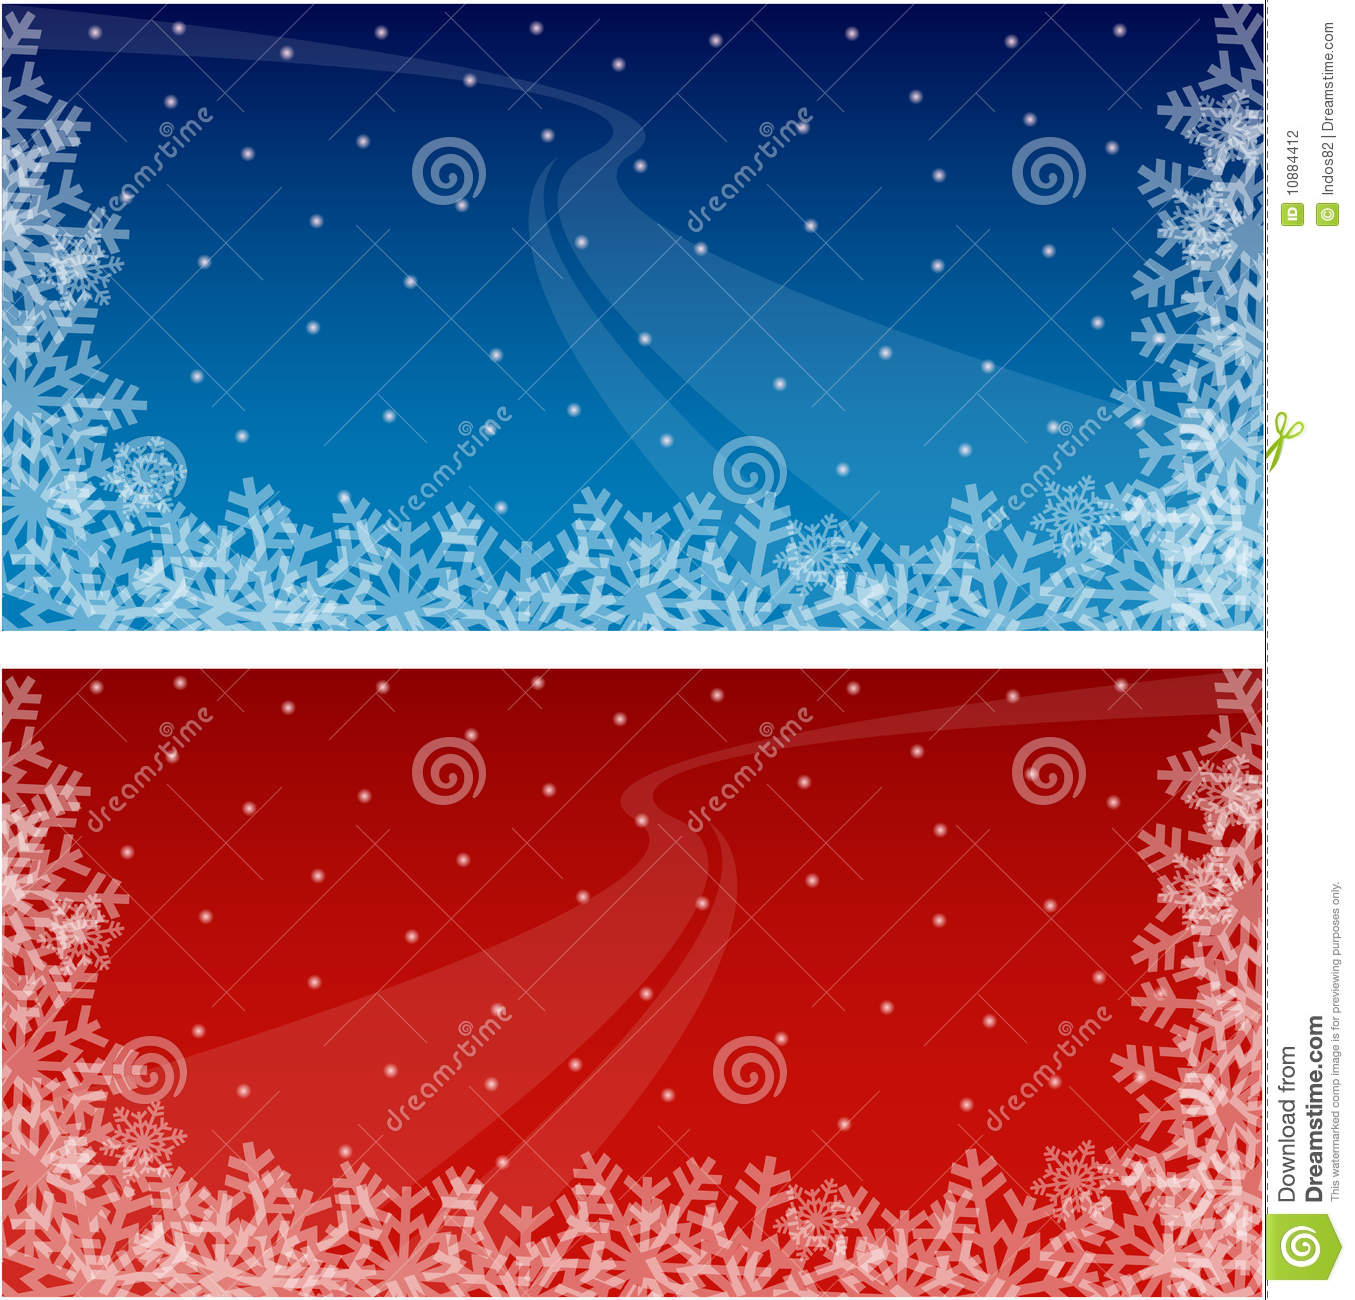 Winter Holiday Banners Blank Word Banners